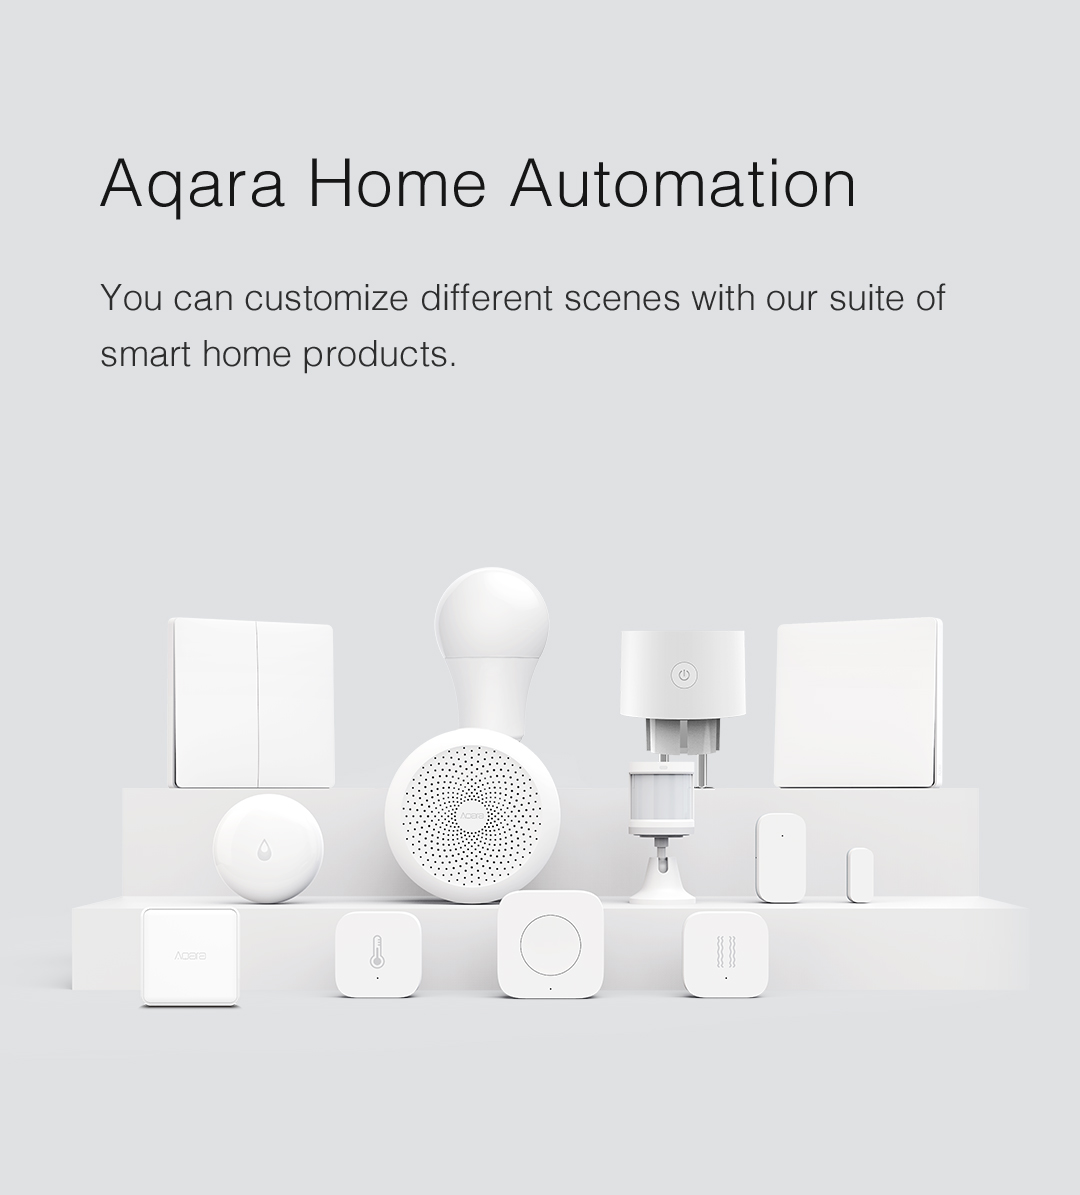 You can customize different scenes with Aqara smart home products.